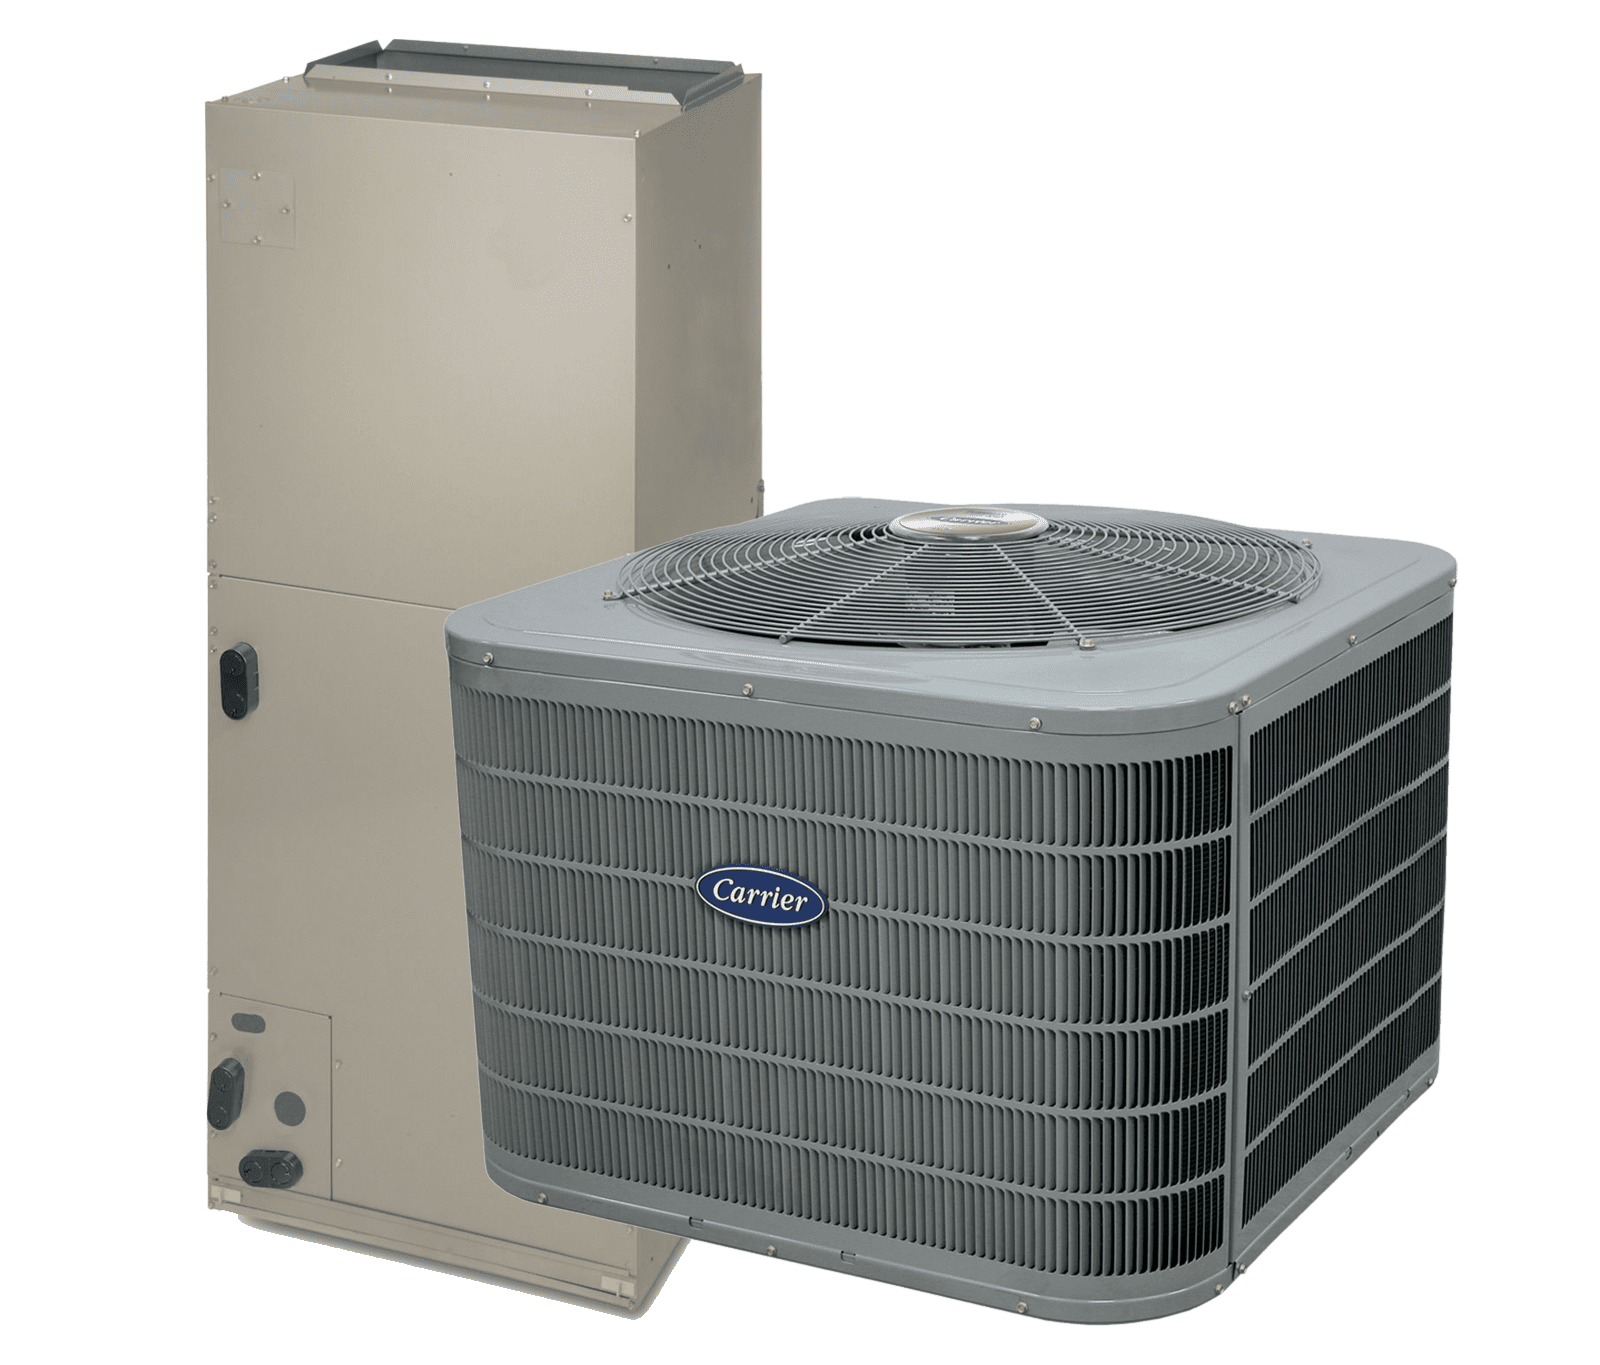 New carrier ac system